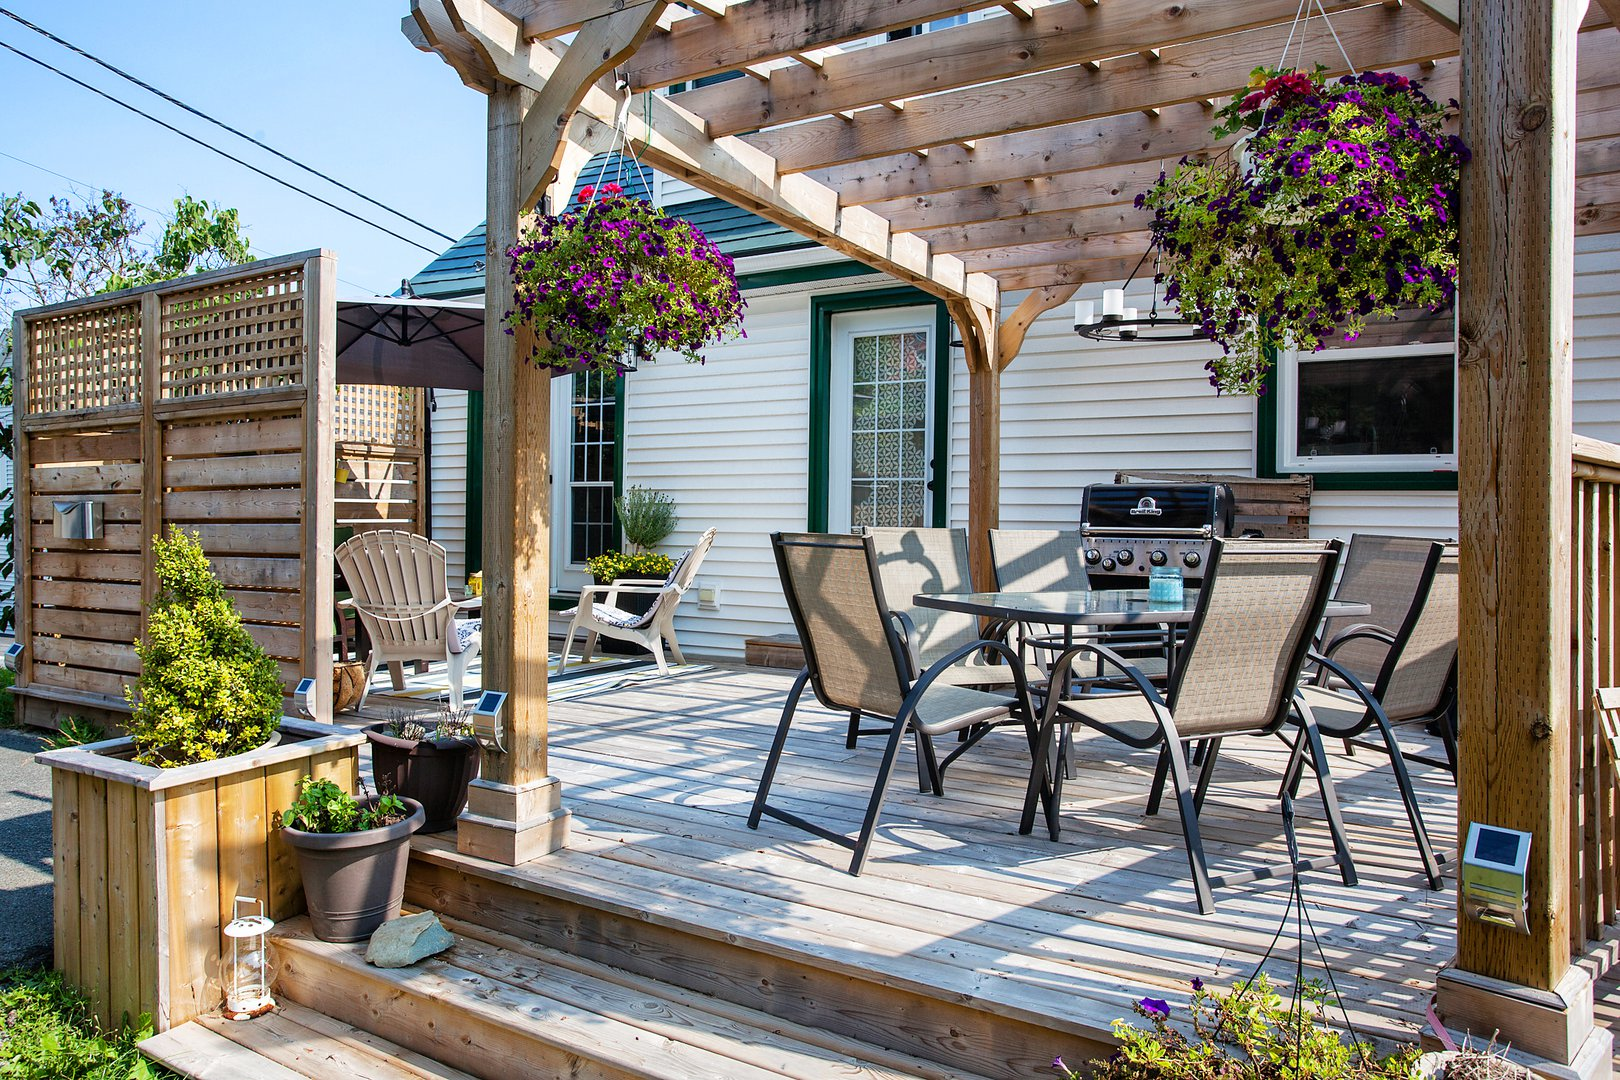 Apartment for rent at 3204 Veith St, Halifax, NS. This is the patio terrace with pergola and deck.